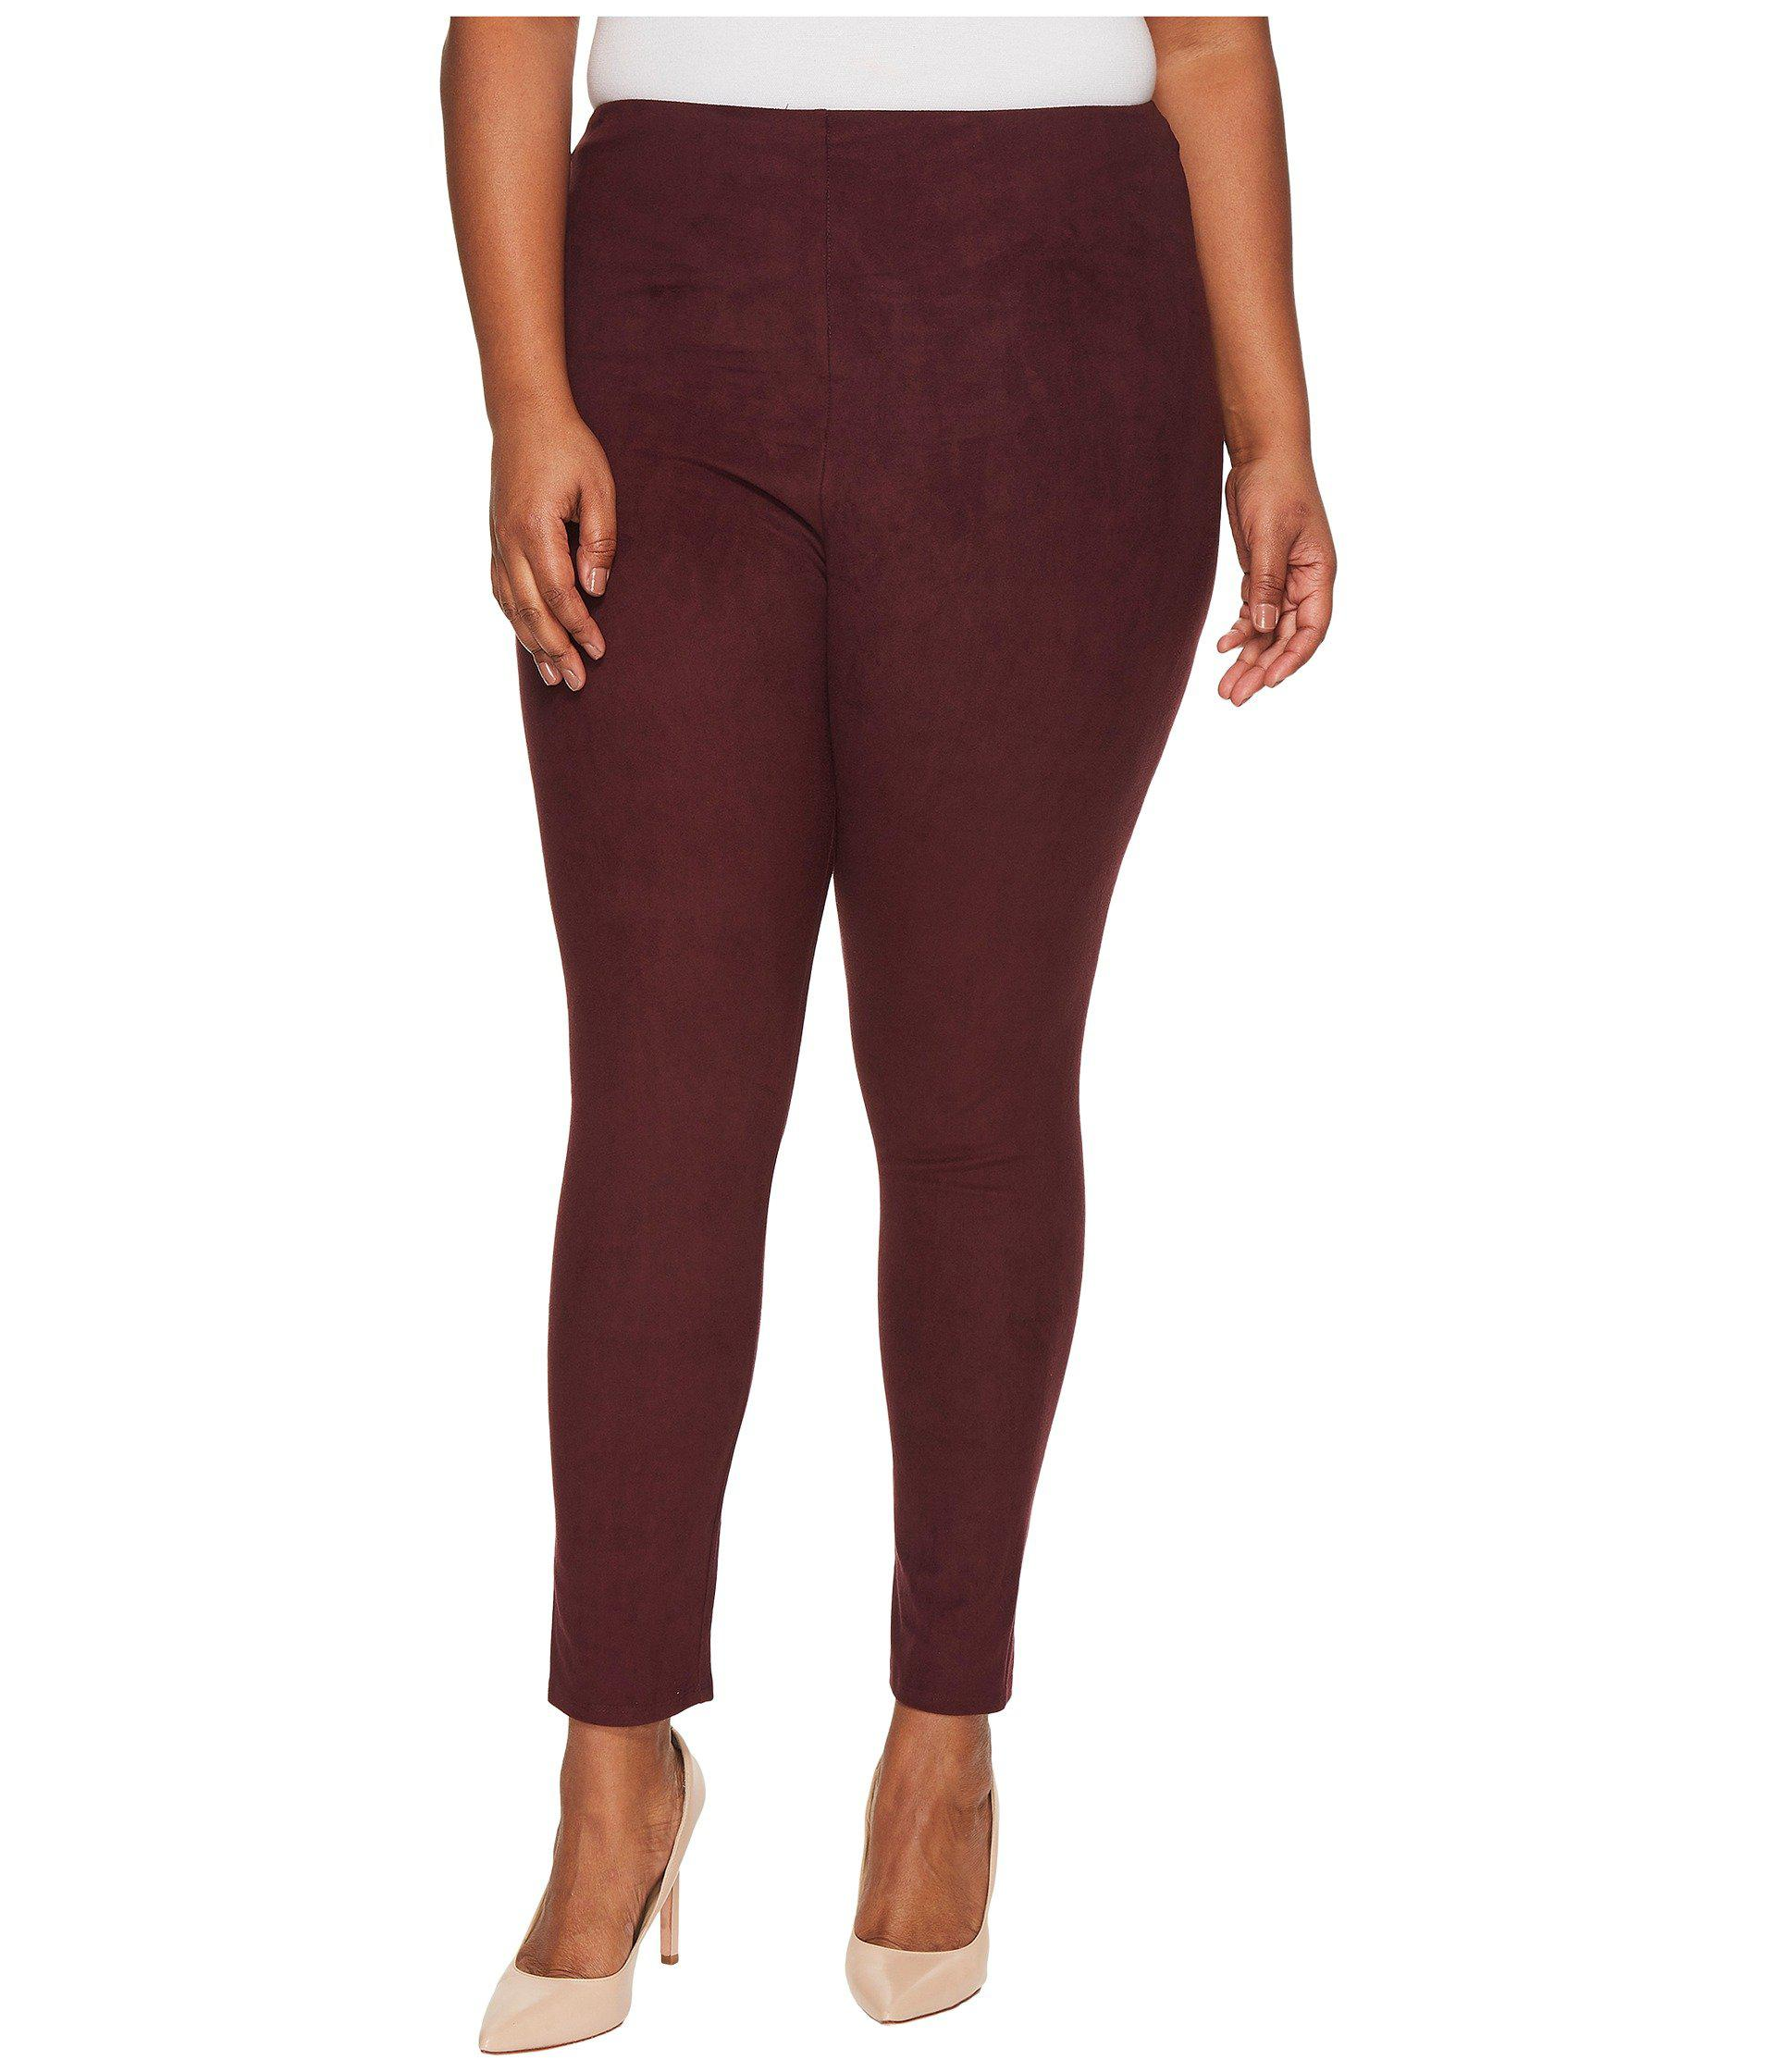 add084ac417 Lyst - Lyssé Plus Size High-waist Suede Leggings in Red - Save 7%